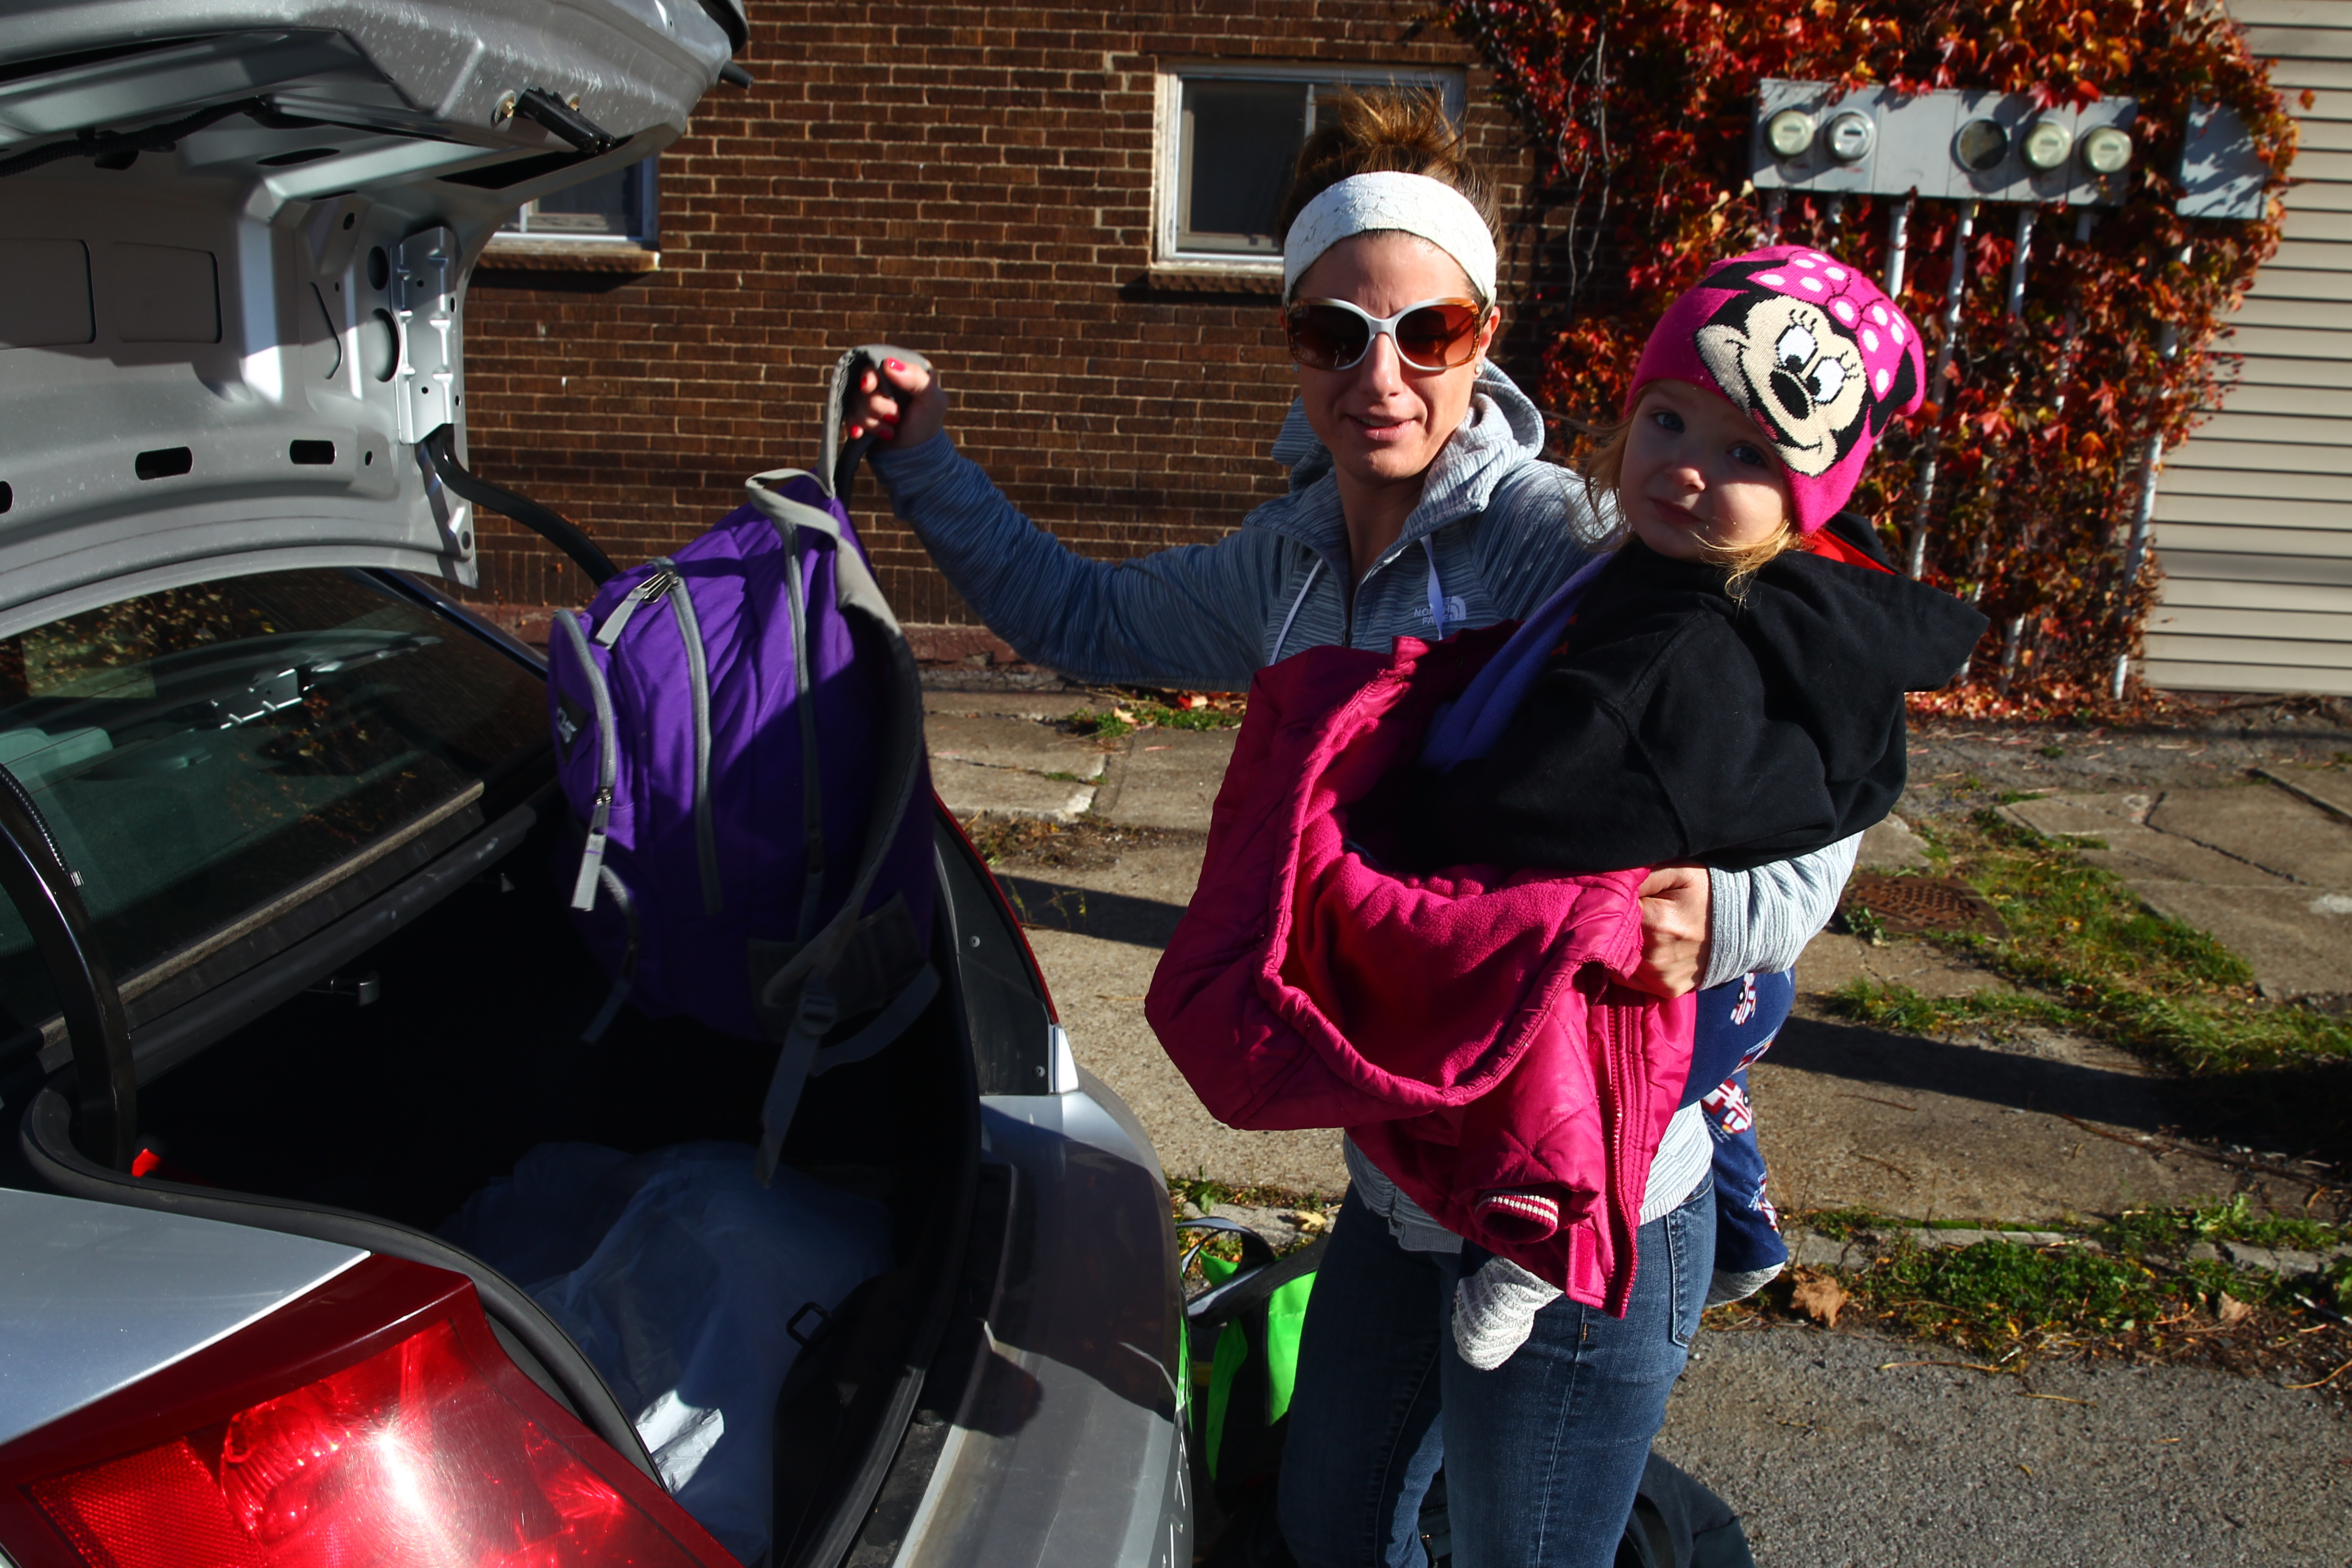 Rebecca and her niece, Autumn, 2, pack up after a mandatory evacuation for residents at Bethlehem Park neighborhood on Thursday, Nov. 10, 2016, as the wreckage from the nearby former Bethlehem Steel site still smoldered. (John Hickey/Buffalo News)